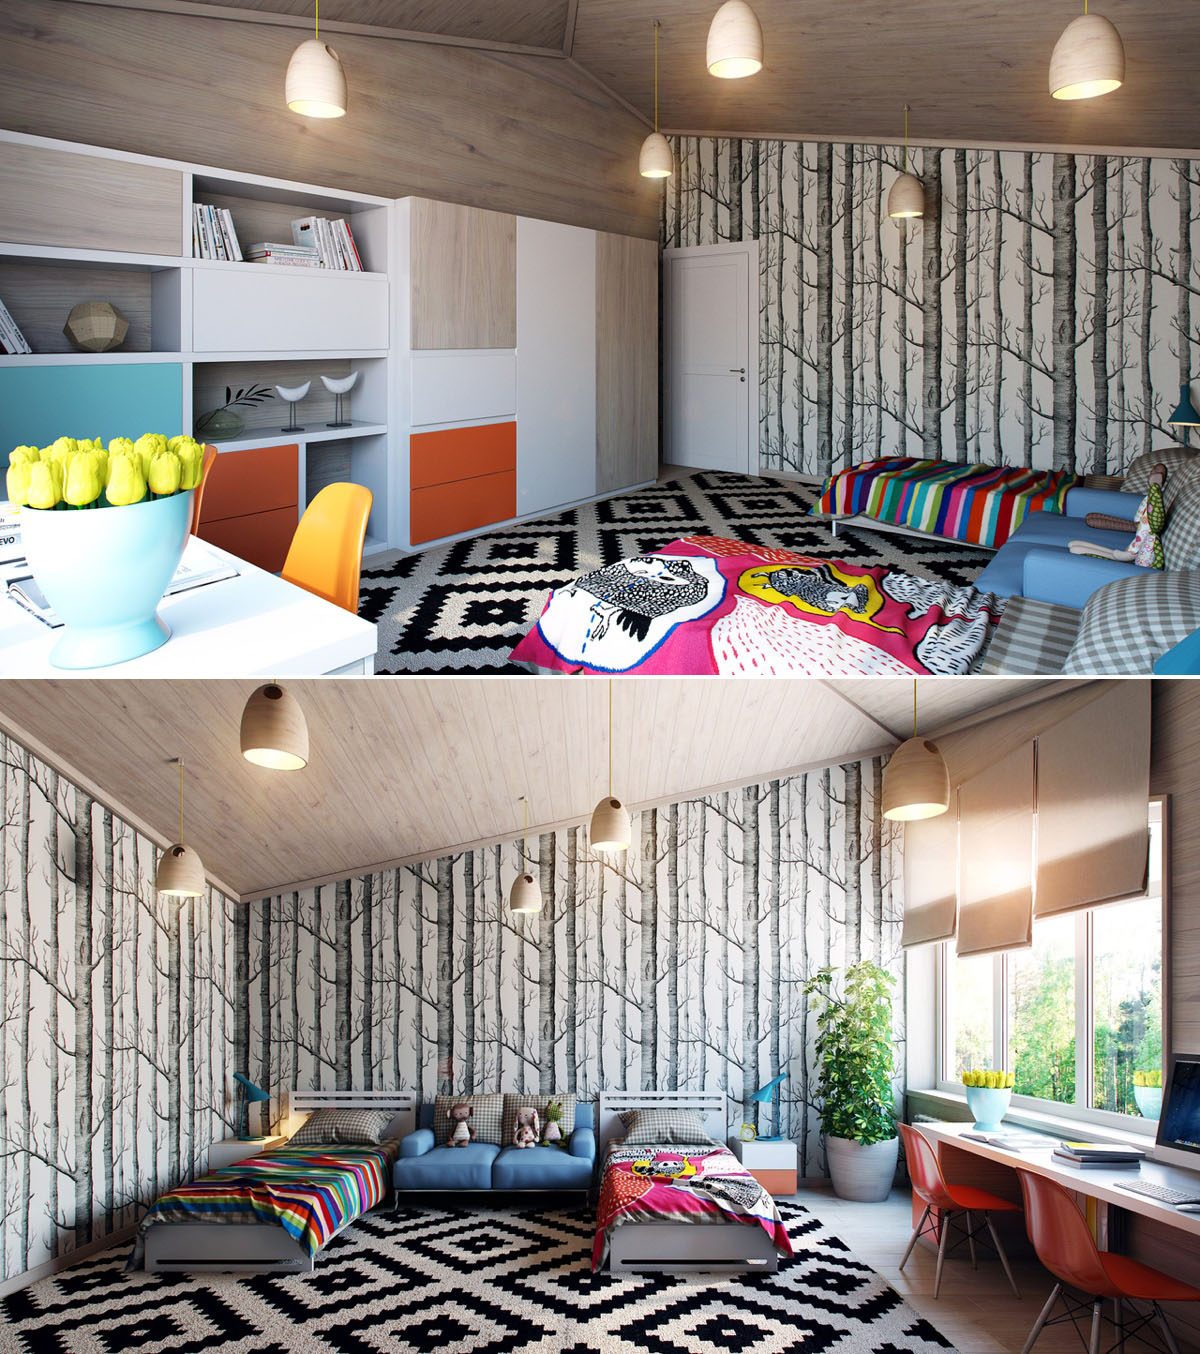 Dark Cozy Girl Wallpaper Bright And Colorful Kids Room Designs With Whimsical